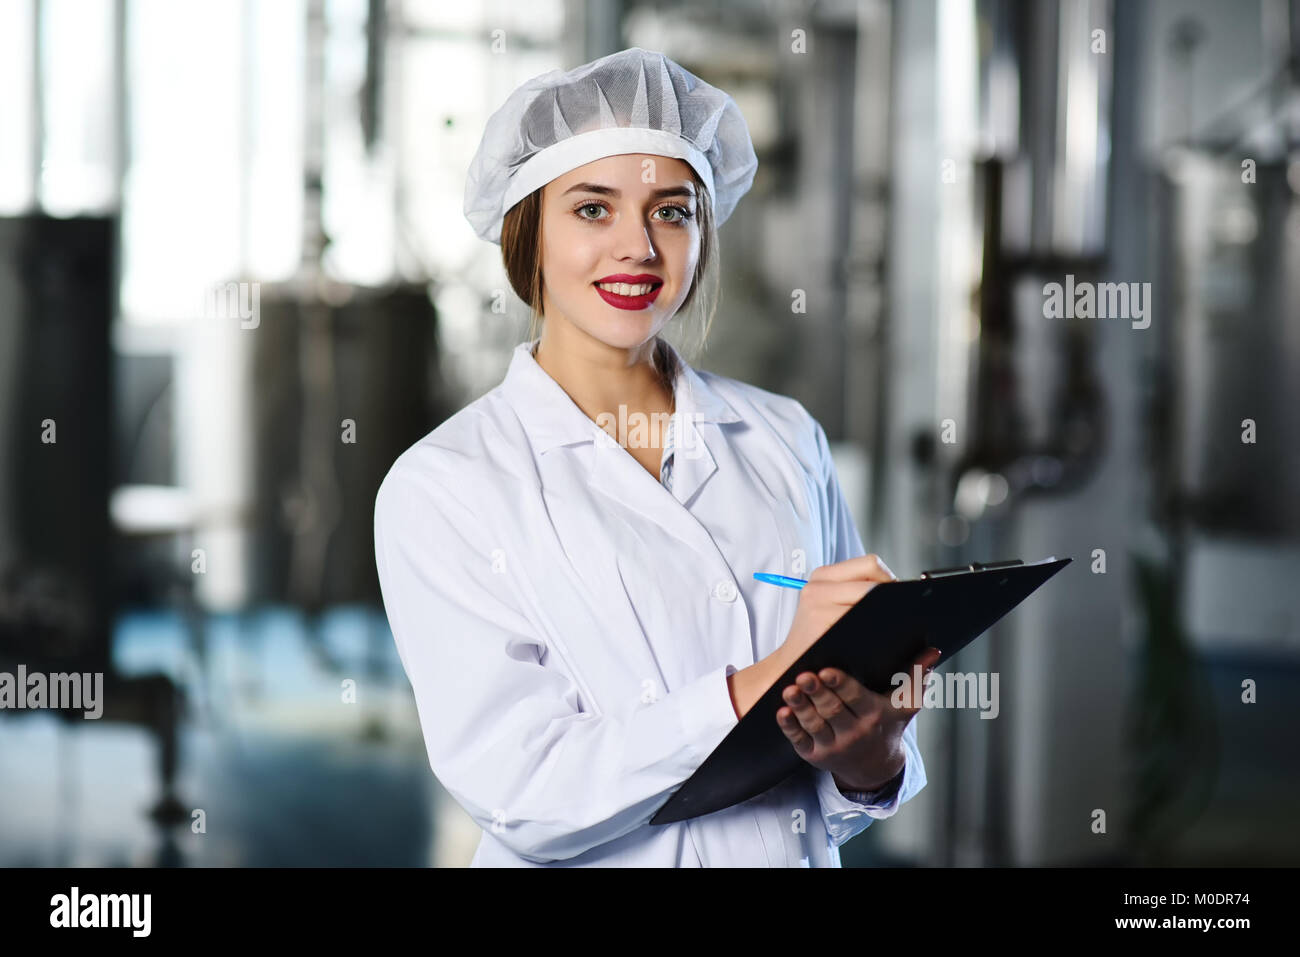 cute girl in white working clothes makes notes on a pen on a tablet - Stock Image